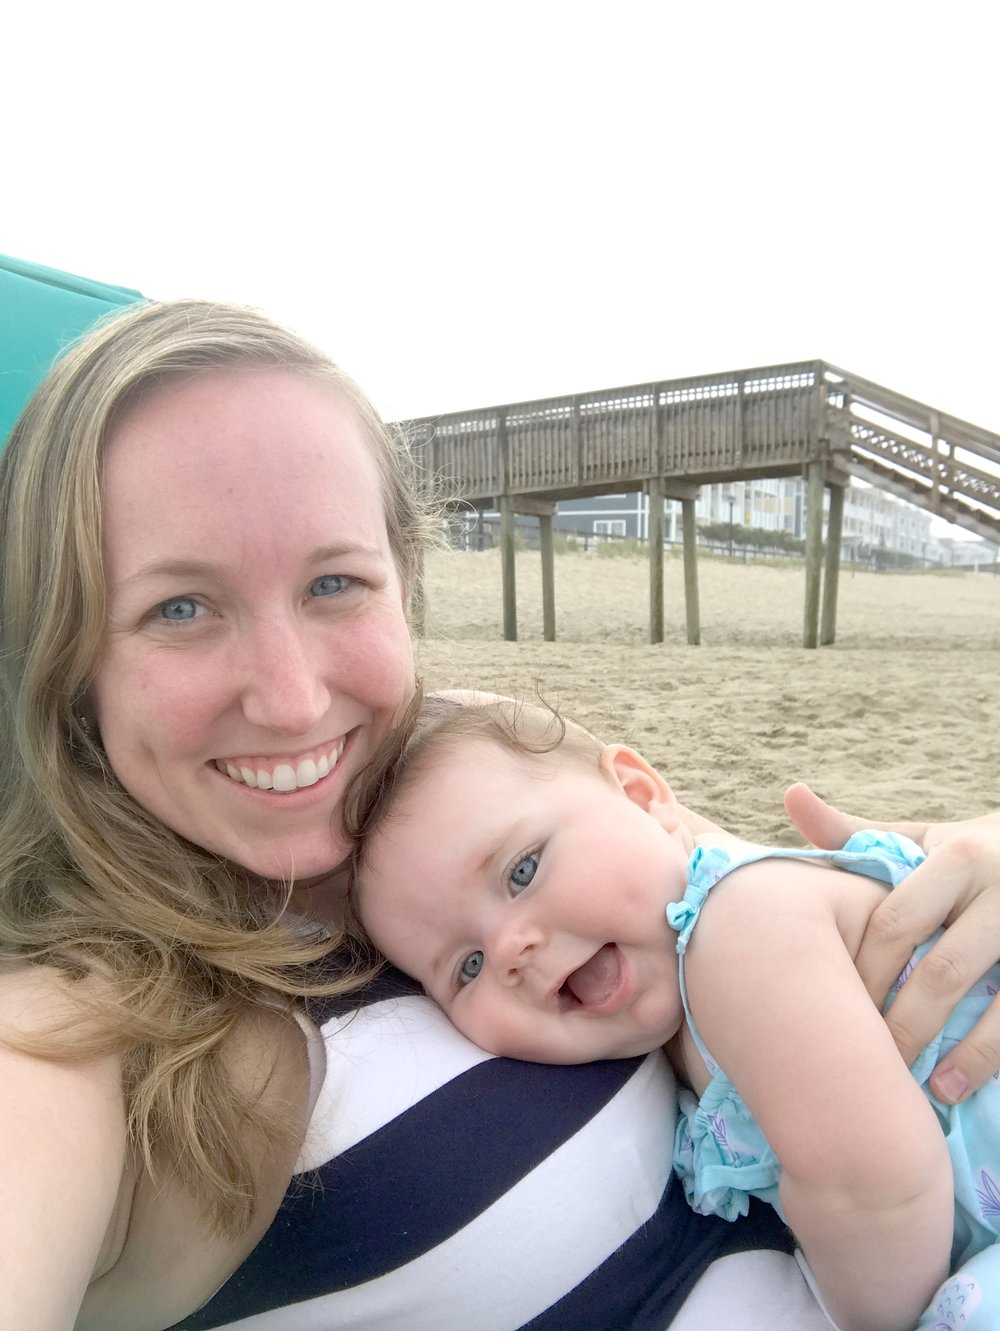 IMG_0600_rehoboth-beach-family-vacation-beach-baby-anna-grace-photography-photo.jpg